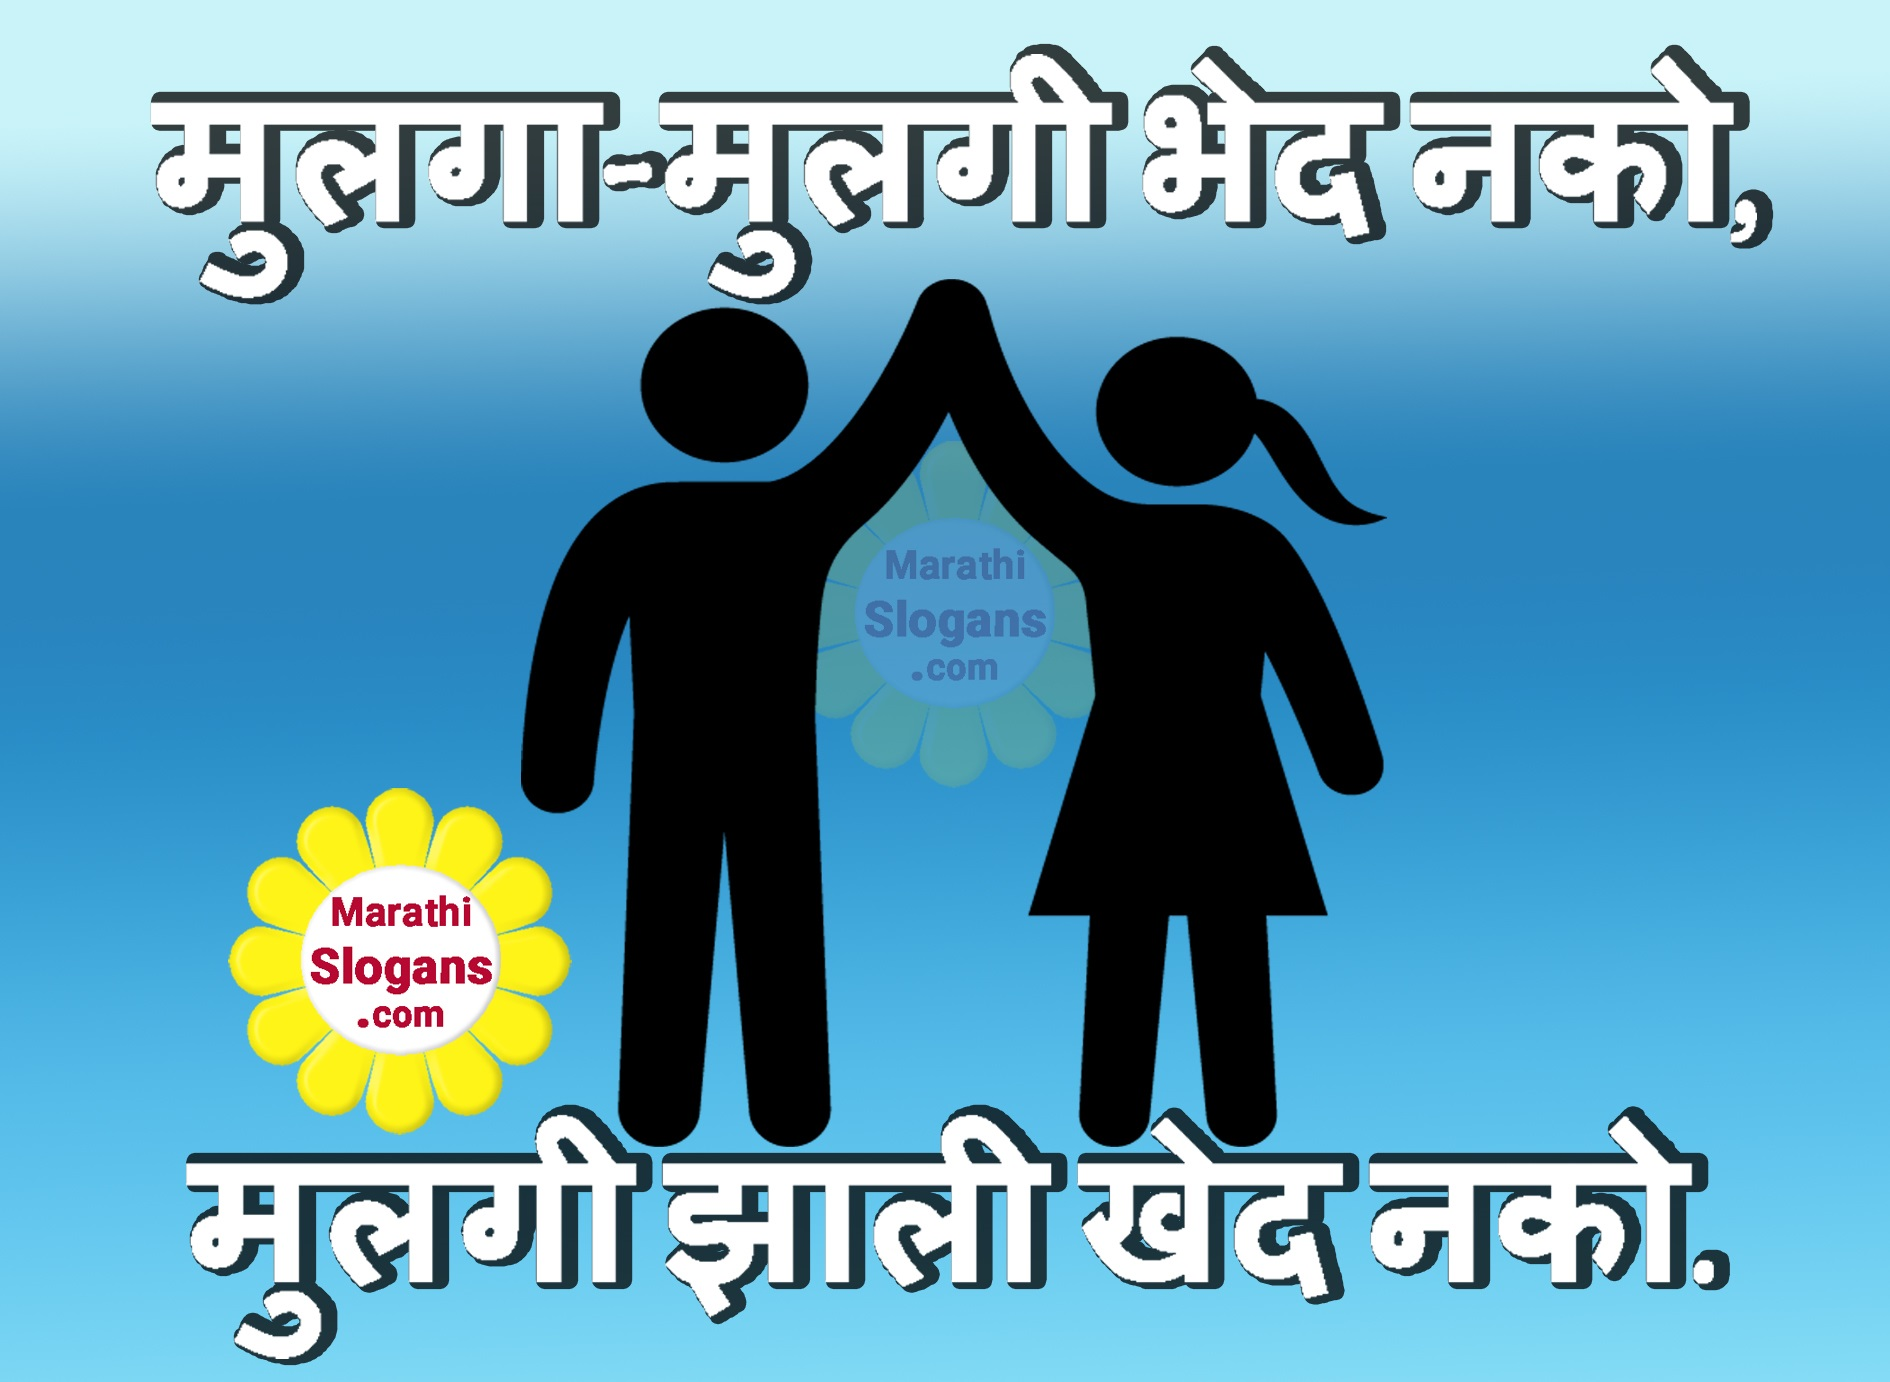 save water essay in marathi